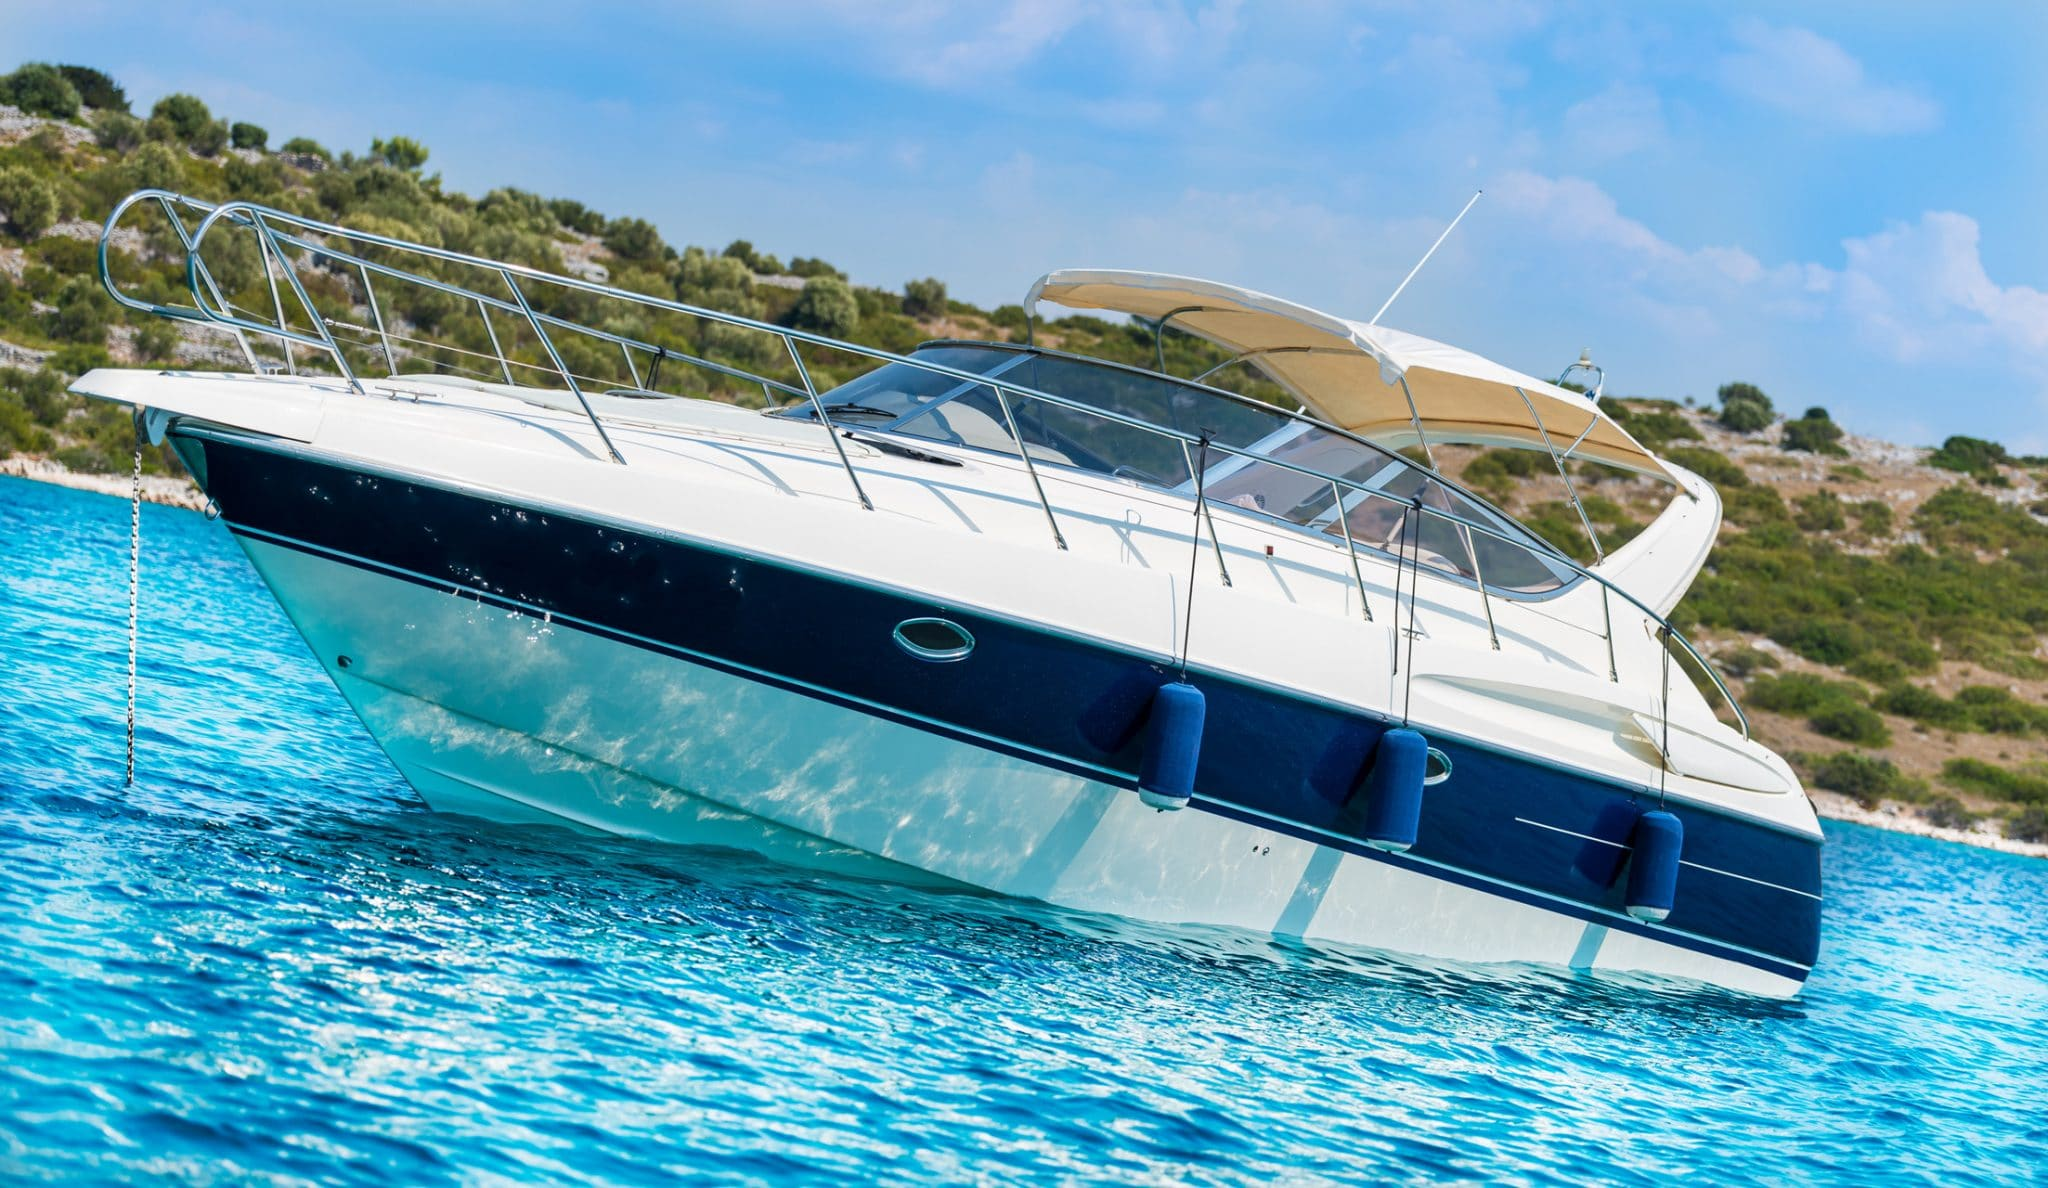 Best prices boat trailers NJ, Best prices boat trailers NY, Best prices boat trailers PA, Best prices boat trailers DE, Best pries boat trailers CT, BEST Boat Trailer Prices NJ NY PA DE CT